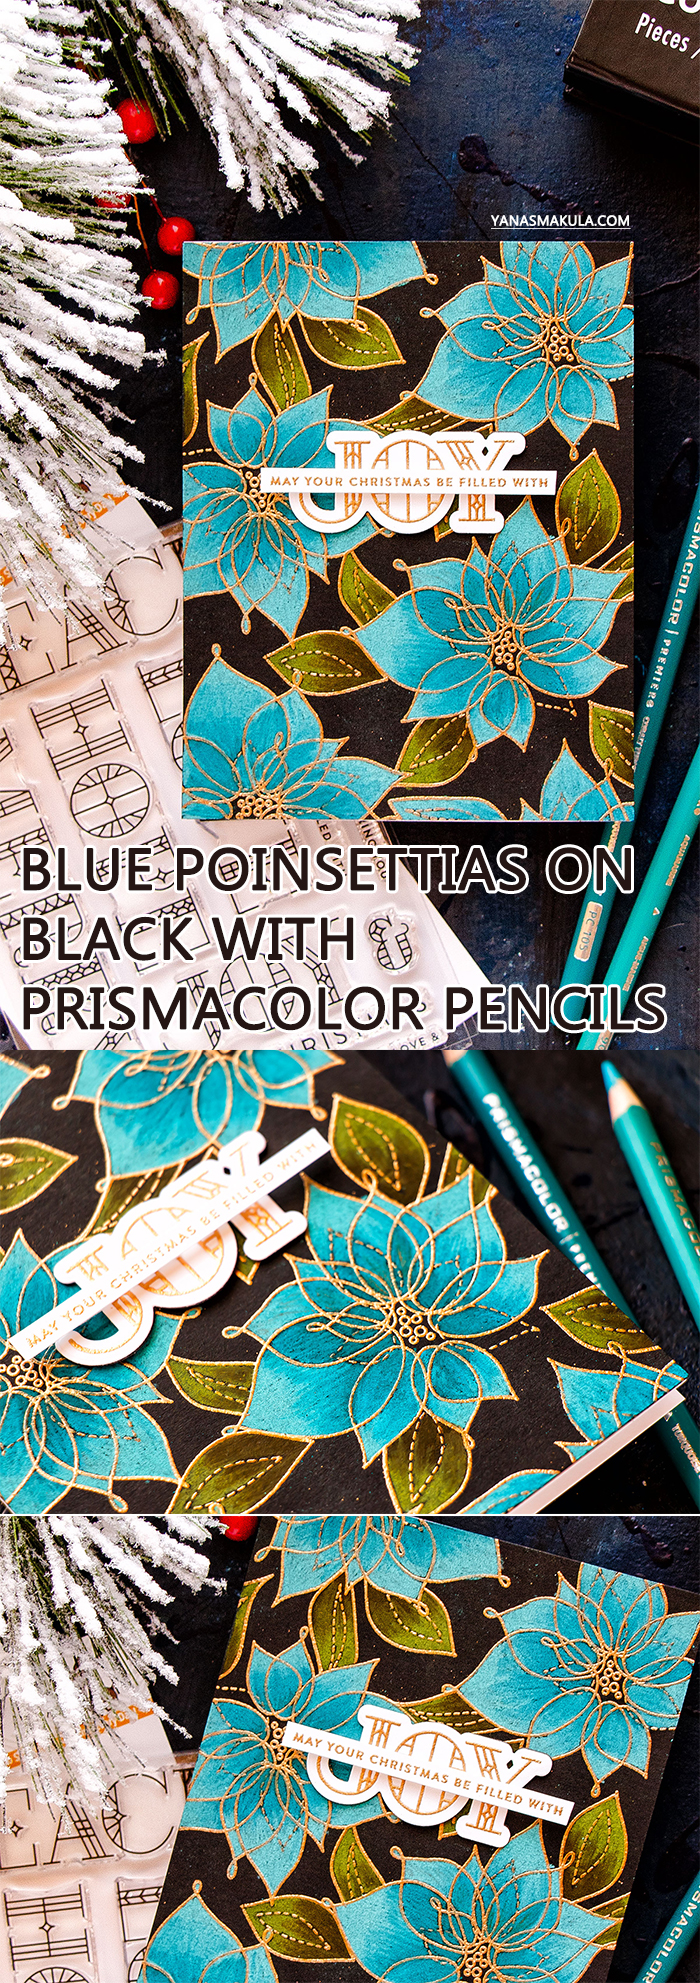 Simon Says Stamp | Blue Poinsettias on Black with Prismacolor Pencils. Simon Says Stamp Winter Flowers and Stained Glass Greetings stamps set.